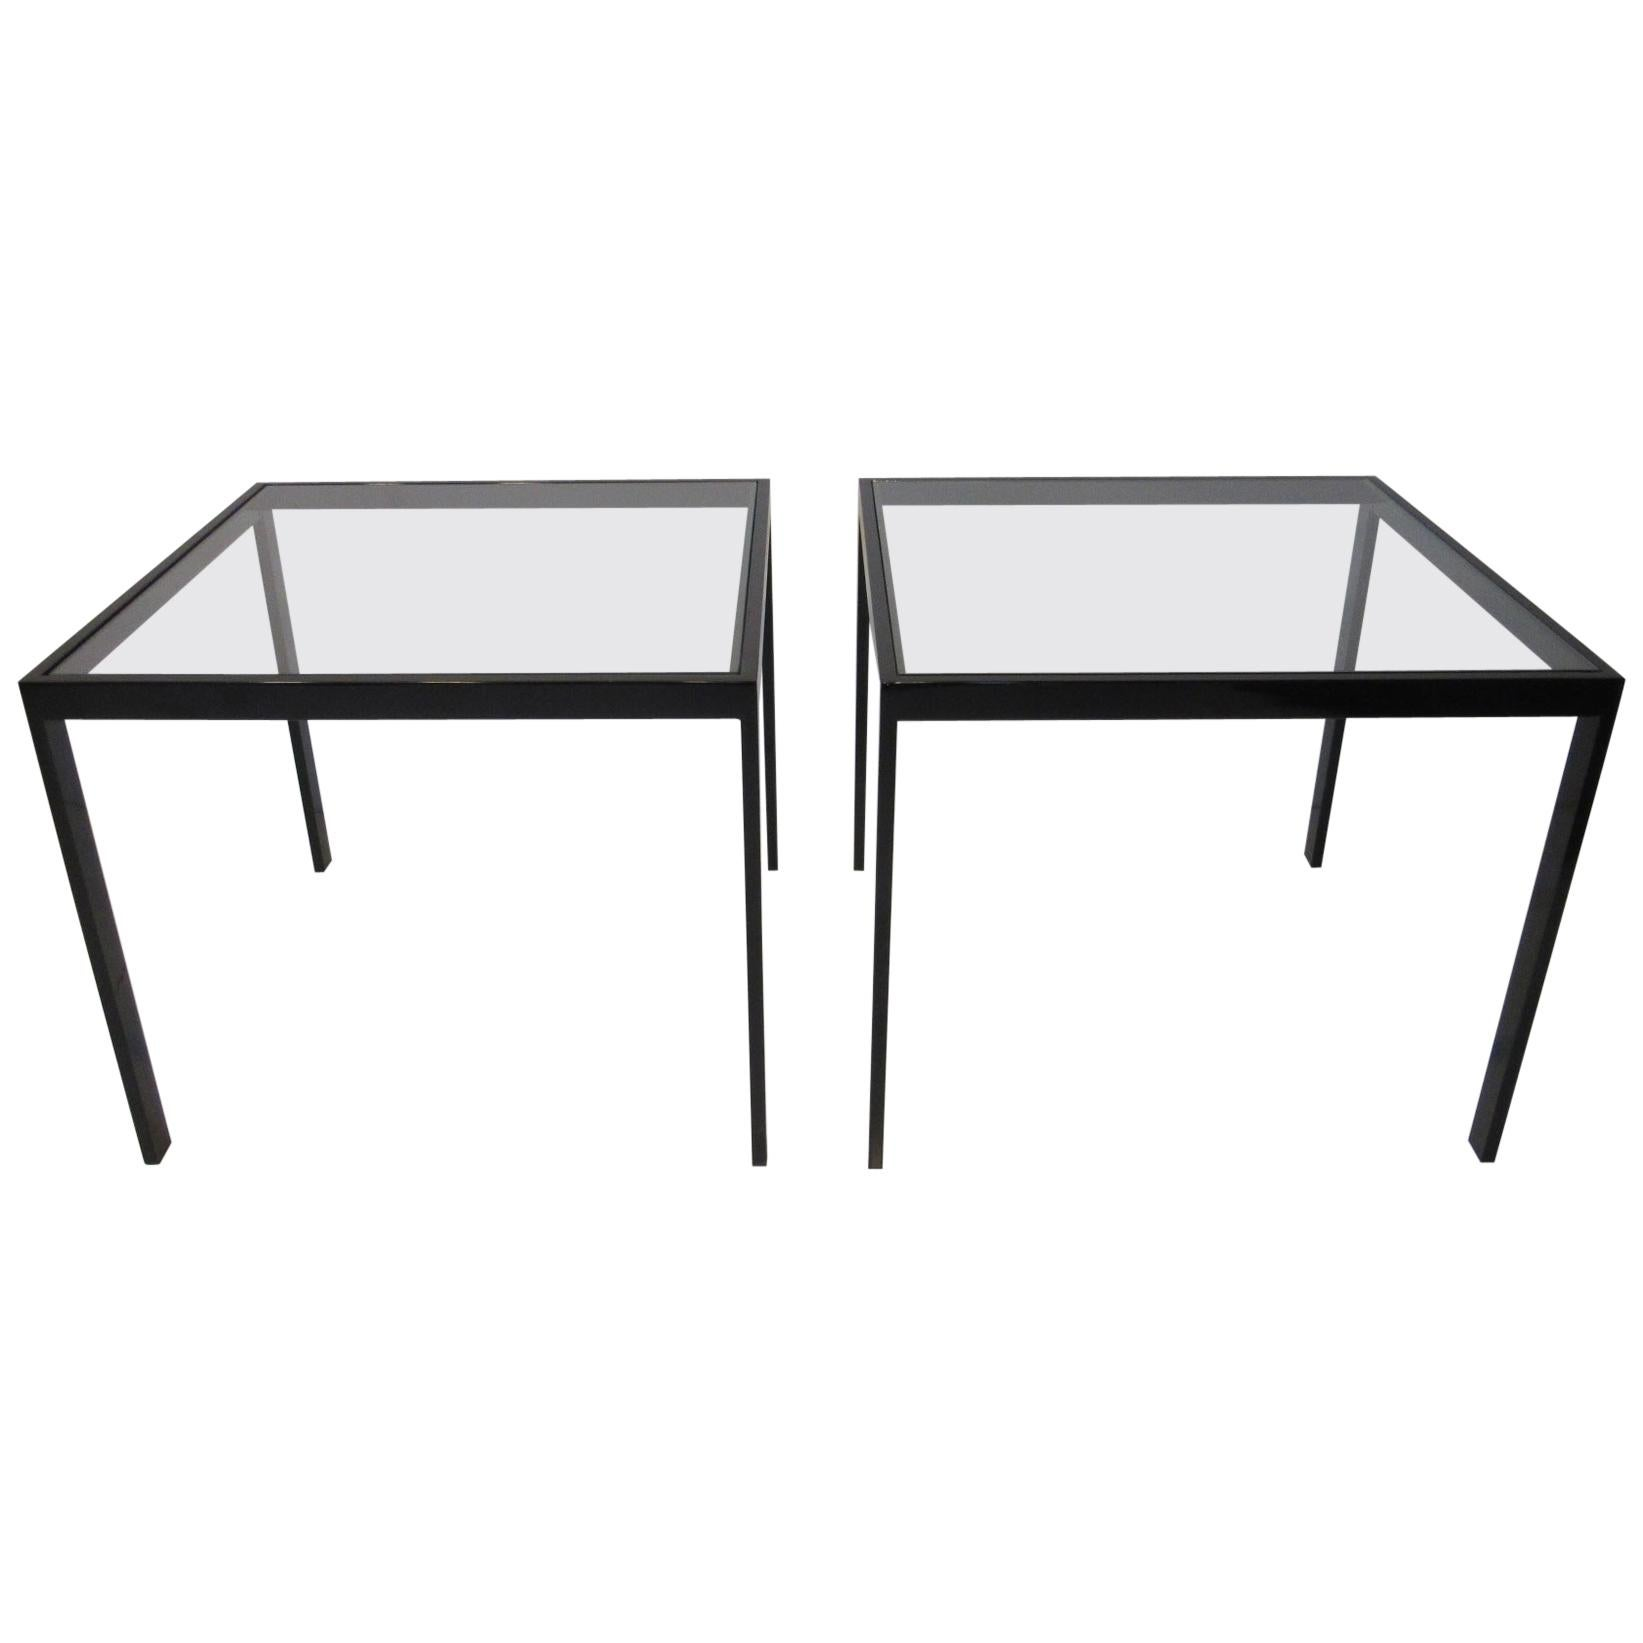 DIA Side Tables Black Anodized Metal / Glass by Design Institute of America